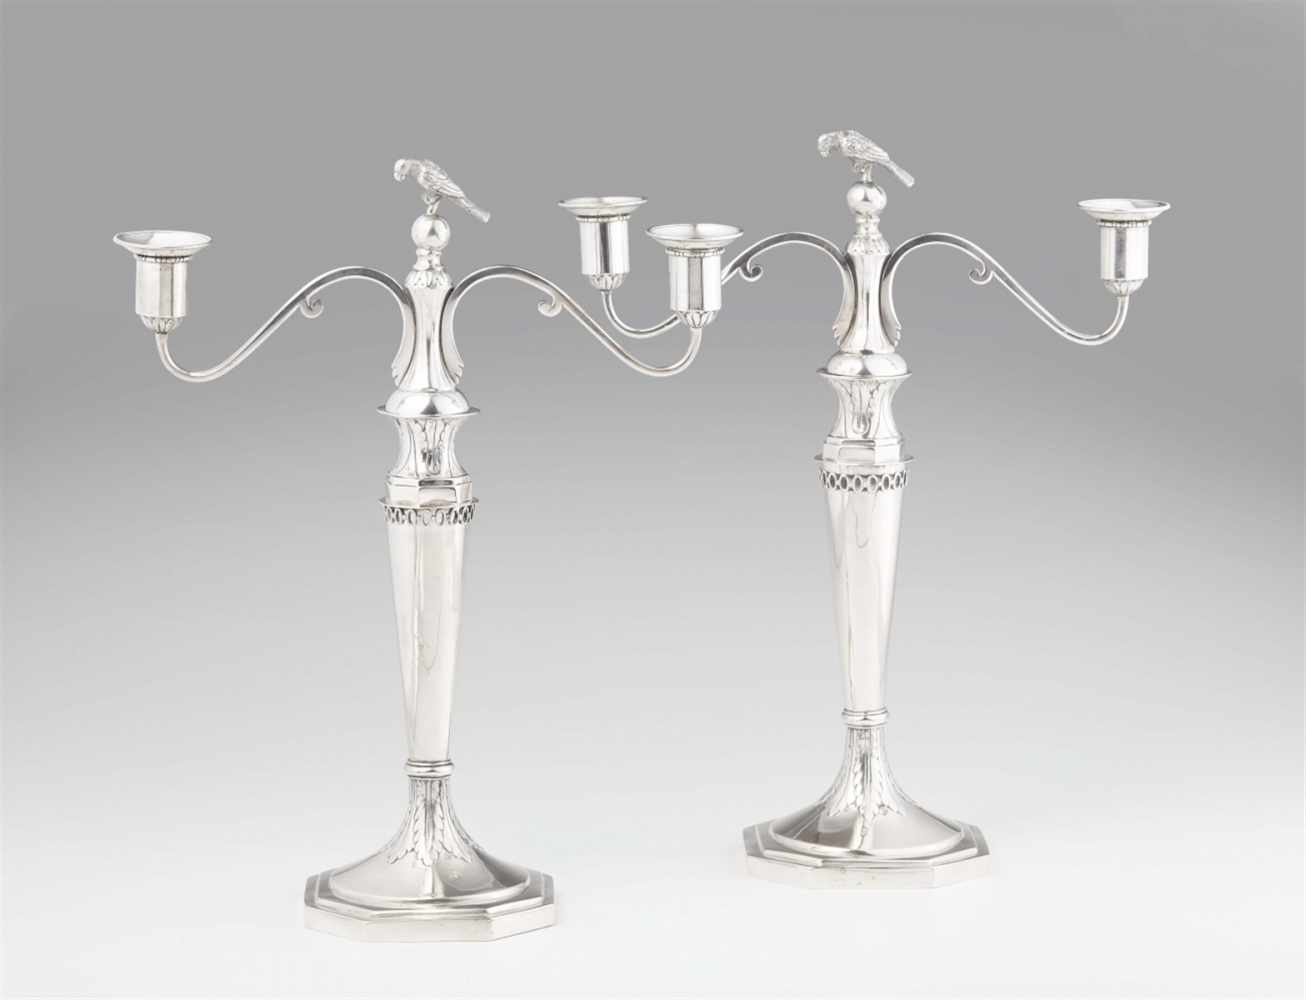 Lot 351 - A pair of Dresden silver candelabraSmooth conical shafts resting on octagonal bases, with loosely